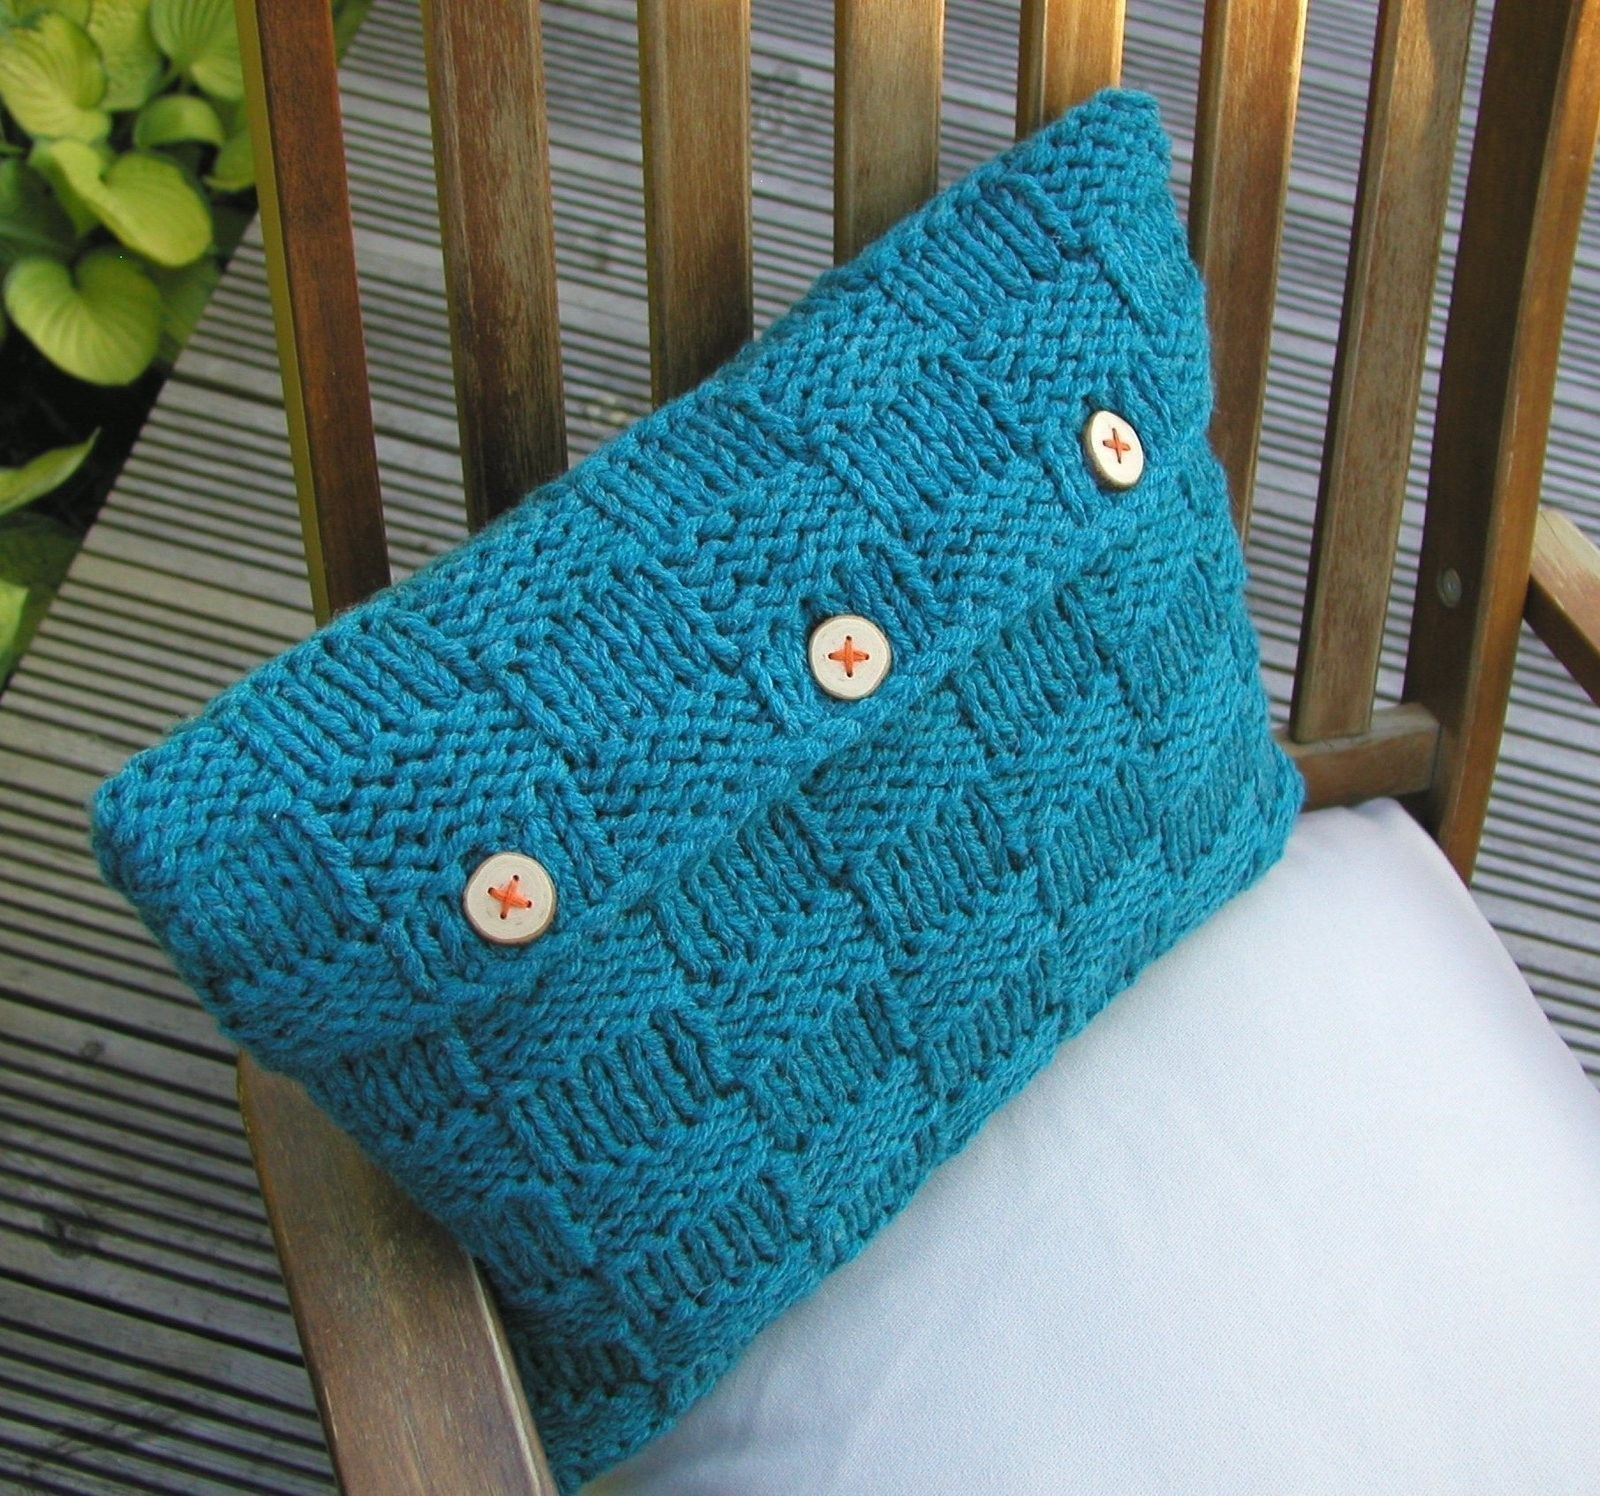 Free Cushion Cover Knitting Pattern Checkerboard Cushion Cover How To Stitch A Knit Or Crochet Cushion